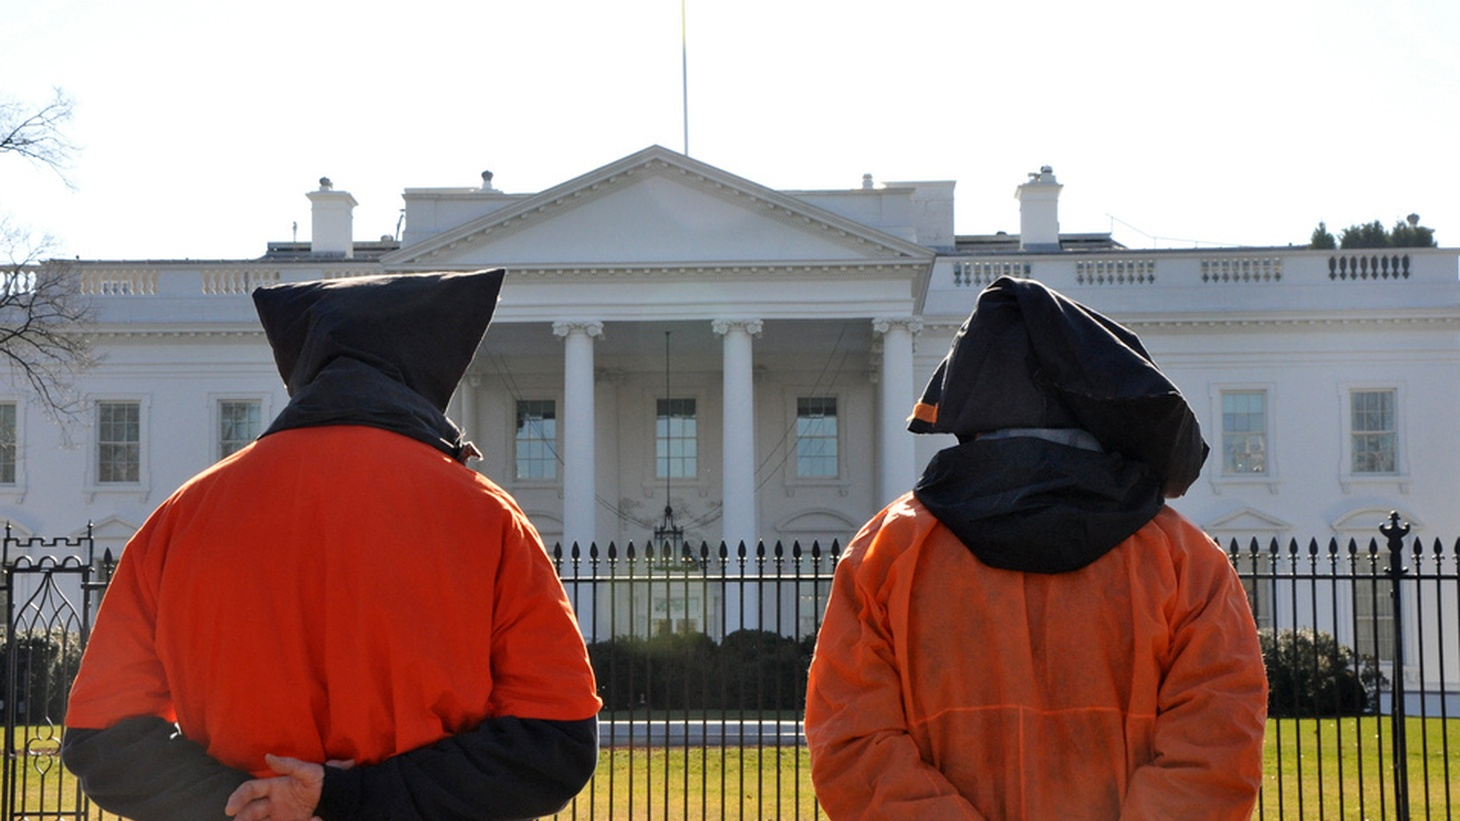 US Special Forces are now on the ground in Iraq, and ISIS fighters are being captured as well as killed. One is reportedly an American citizen. What are the rules for interrogation? Should detainees be held at Guantánamo Bay?